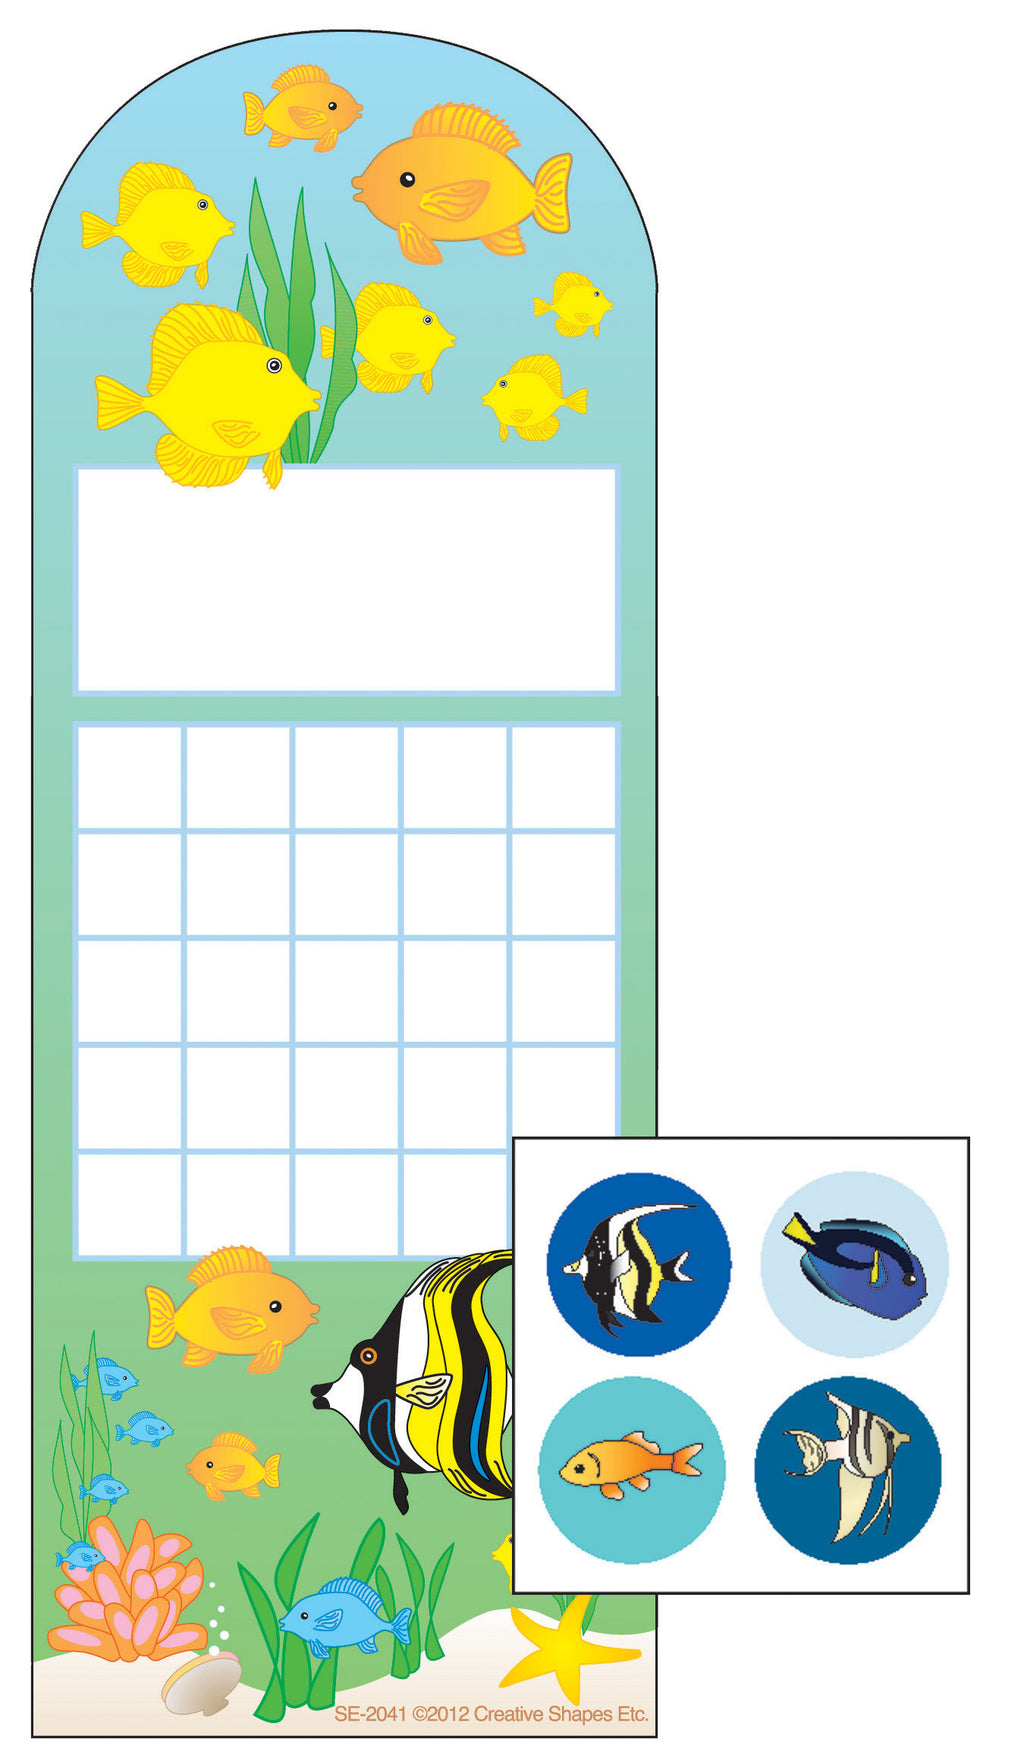 Incentive Sticker Set - Aquarium - Creative Shapes Etc.